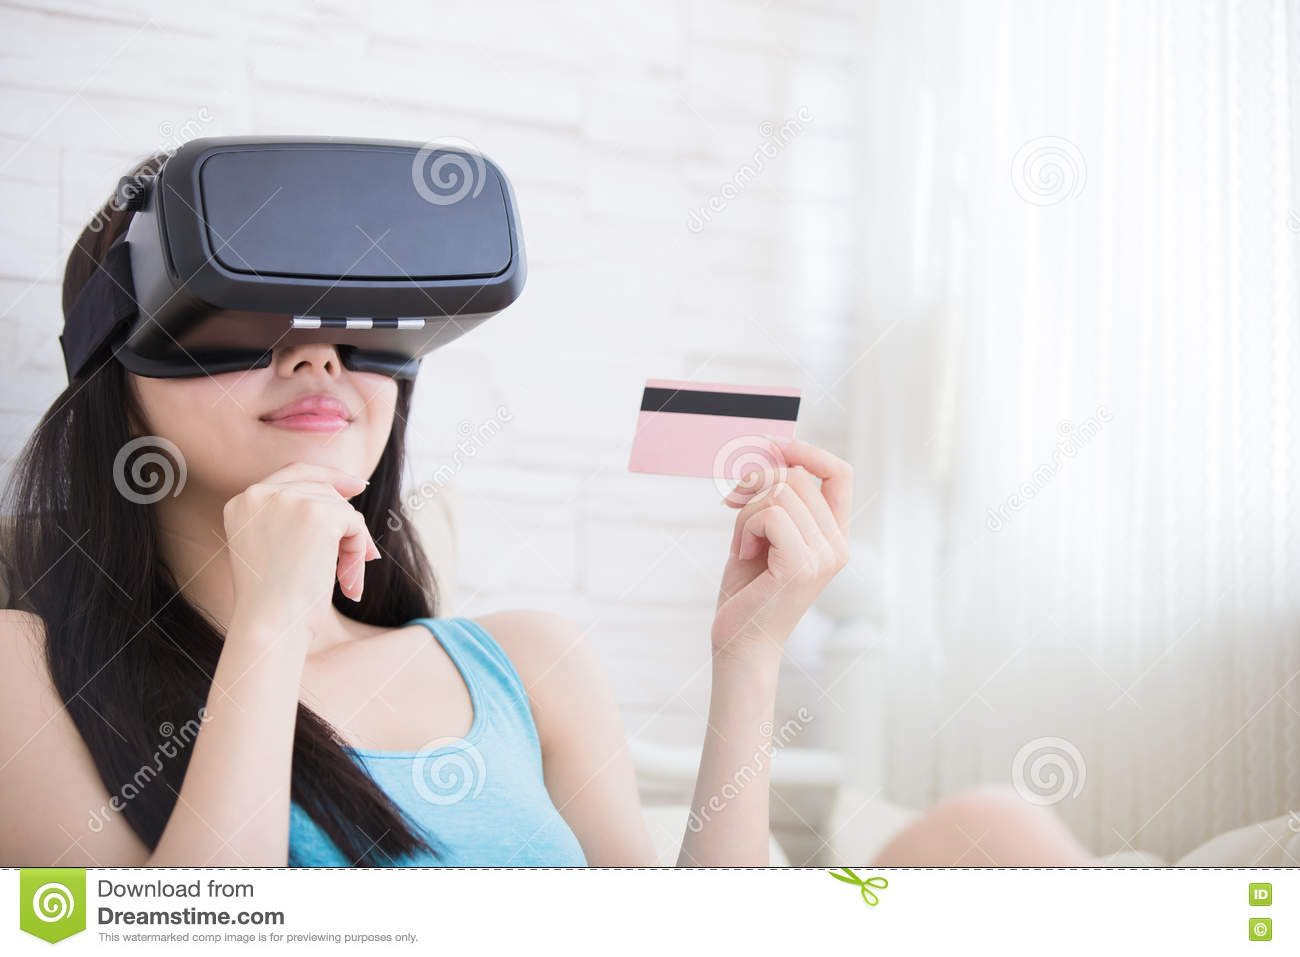 7b789d5e22 Smile happy woman shopping online by VR headset glasses of virtual reality  at home